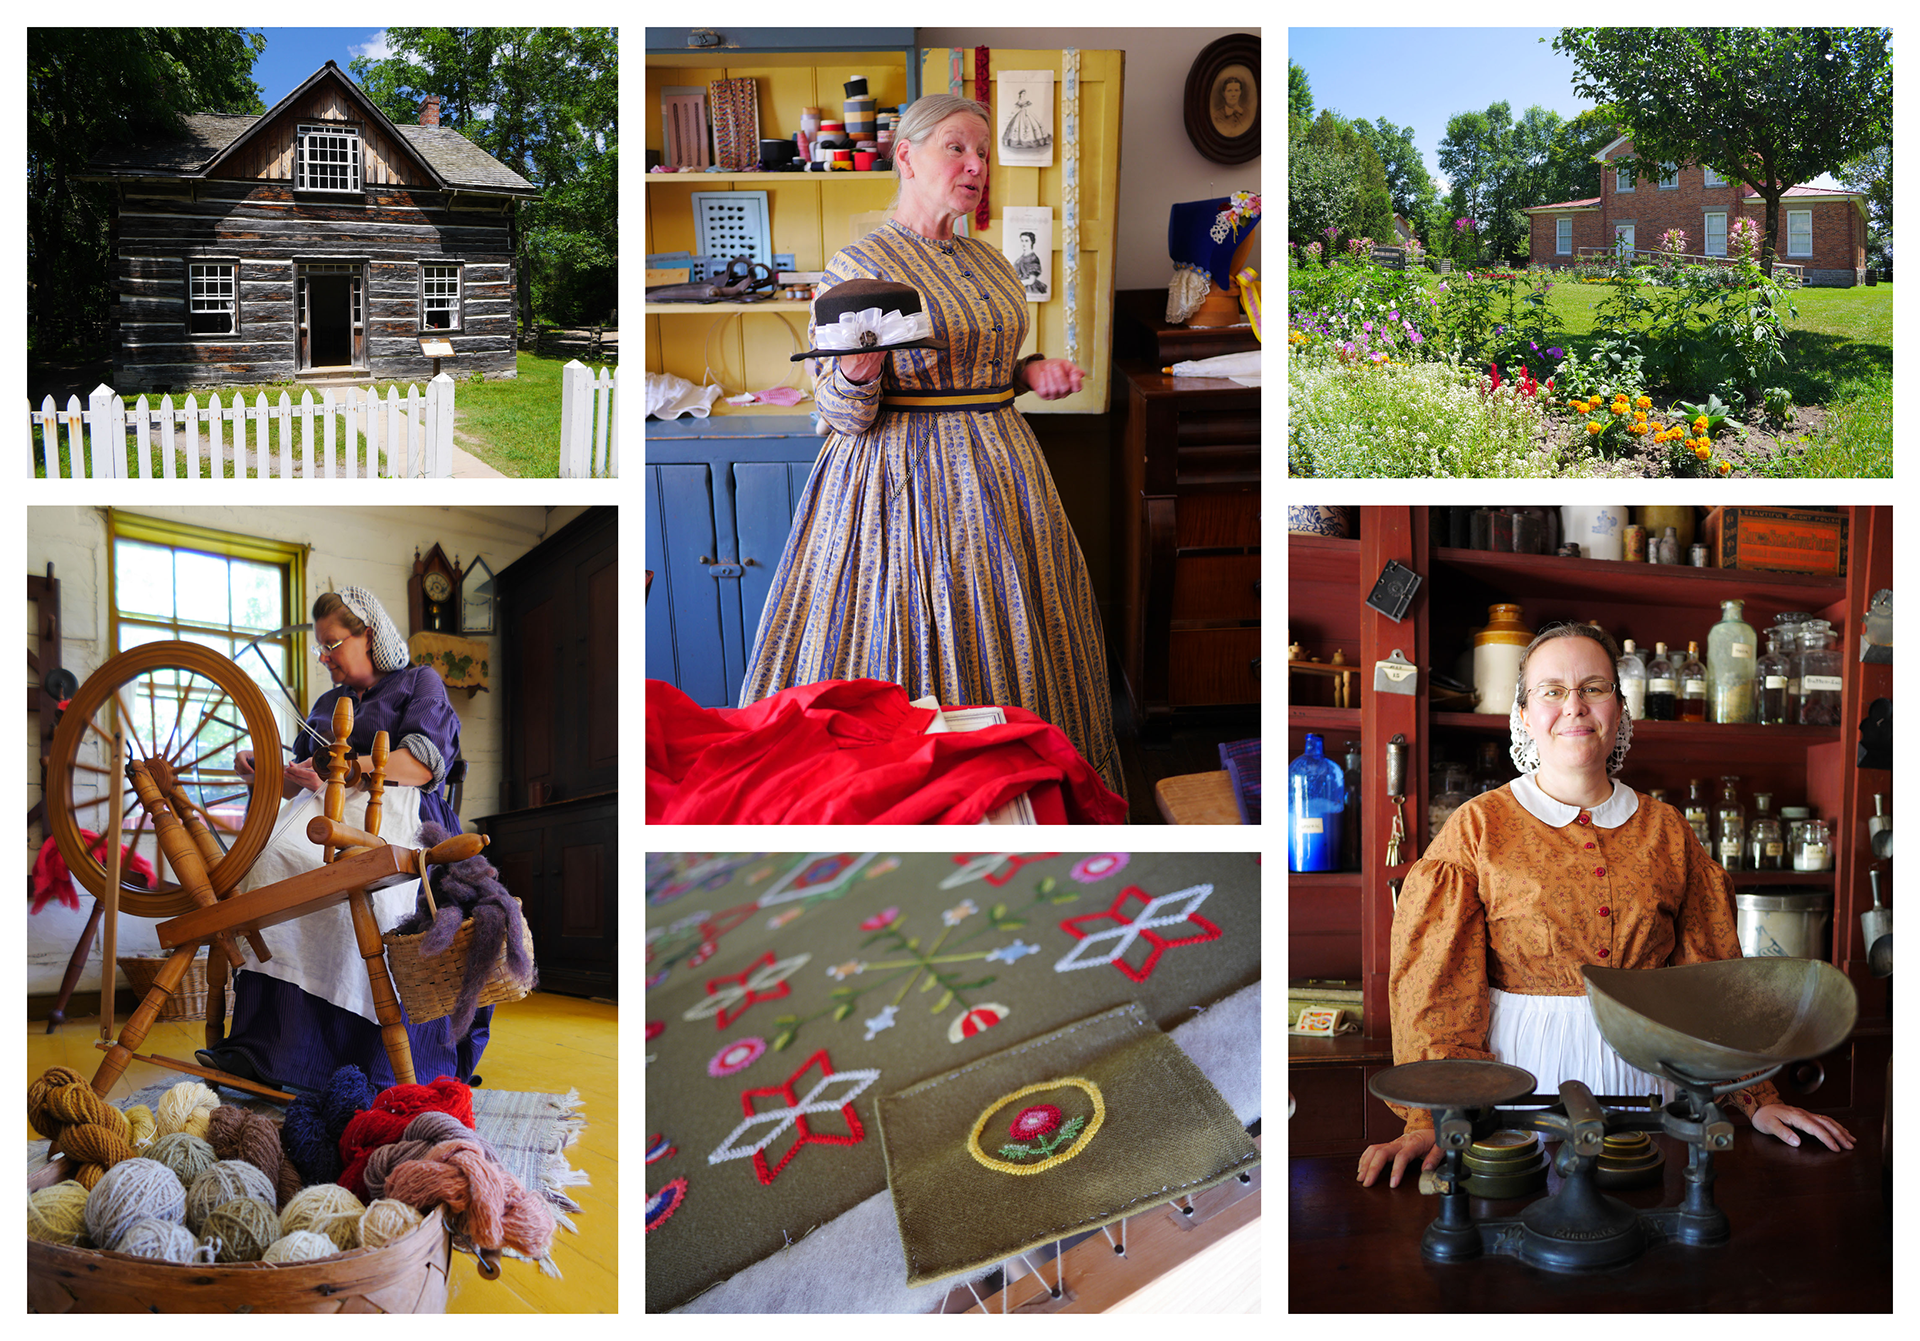 20-uppercanadavillage-working.png